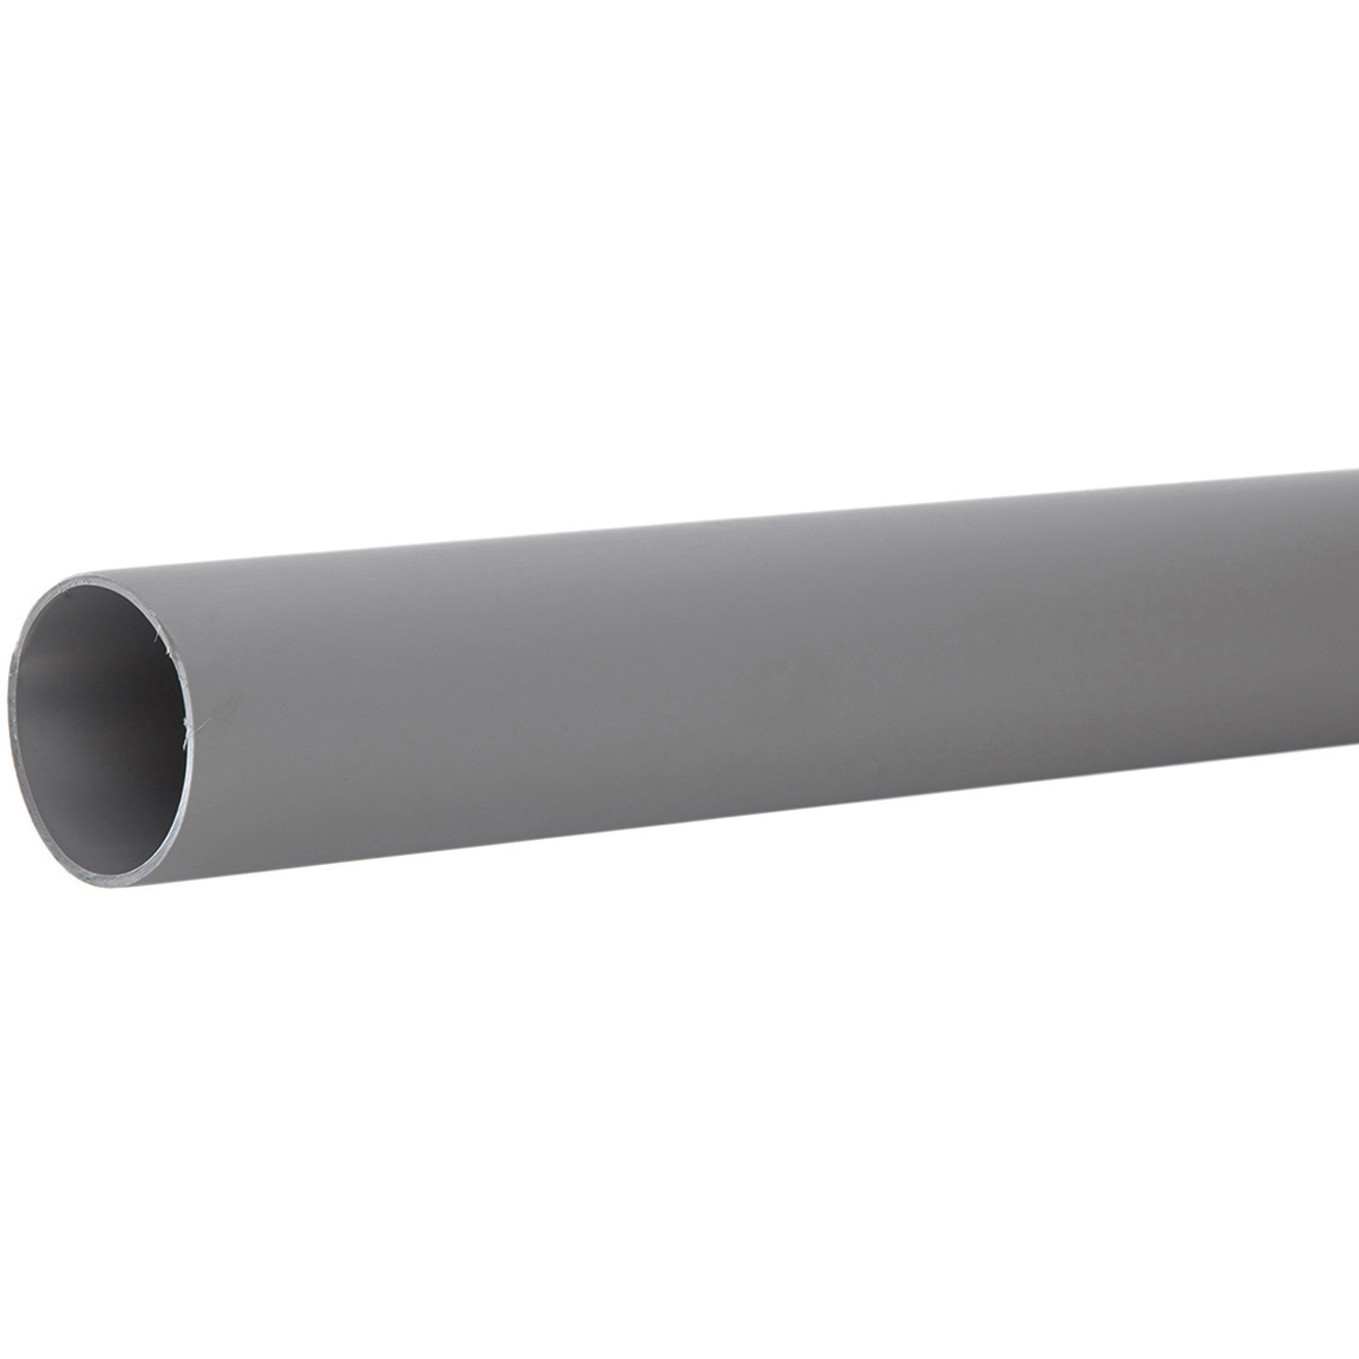 Polypipe 50mm Push Fit Waste Pipe - Grey, 1.5 metre